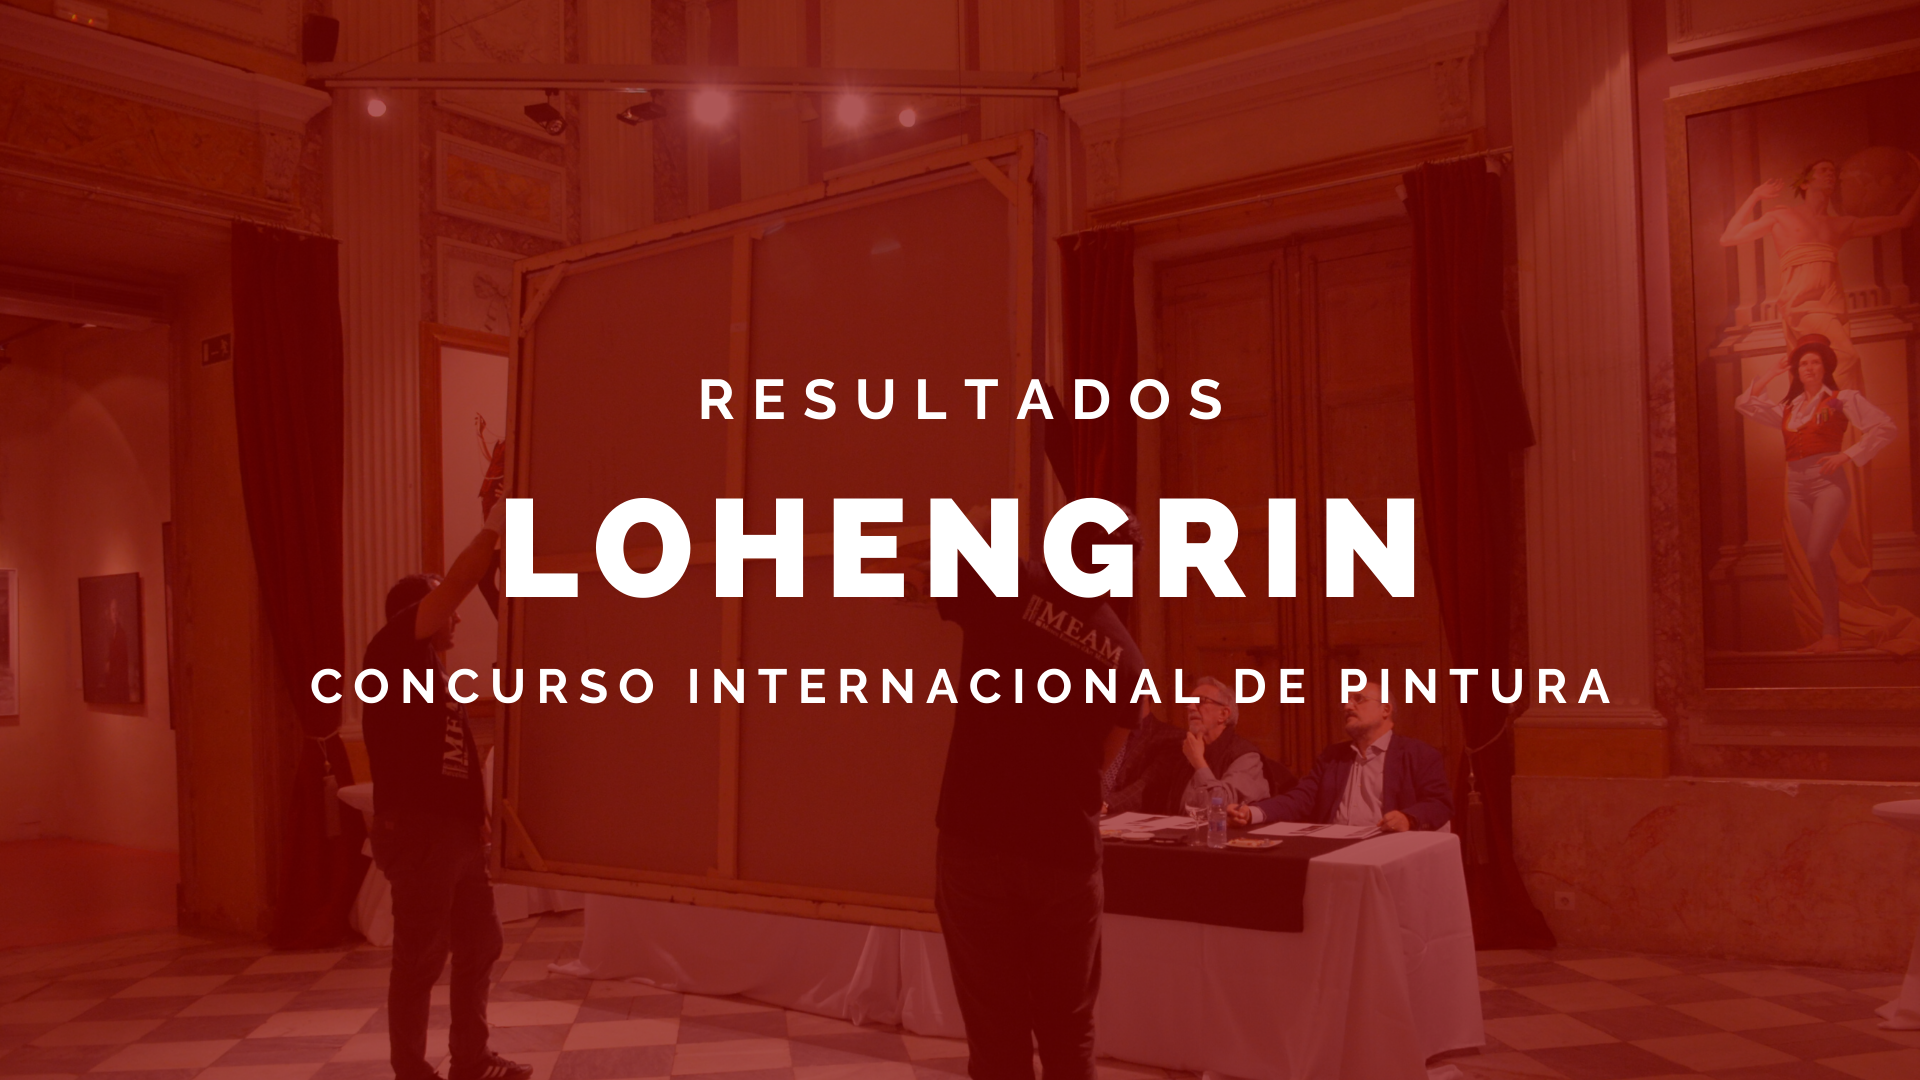 Lohengrin competition results